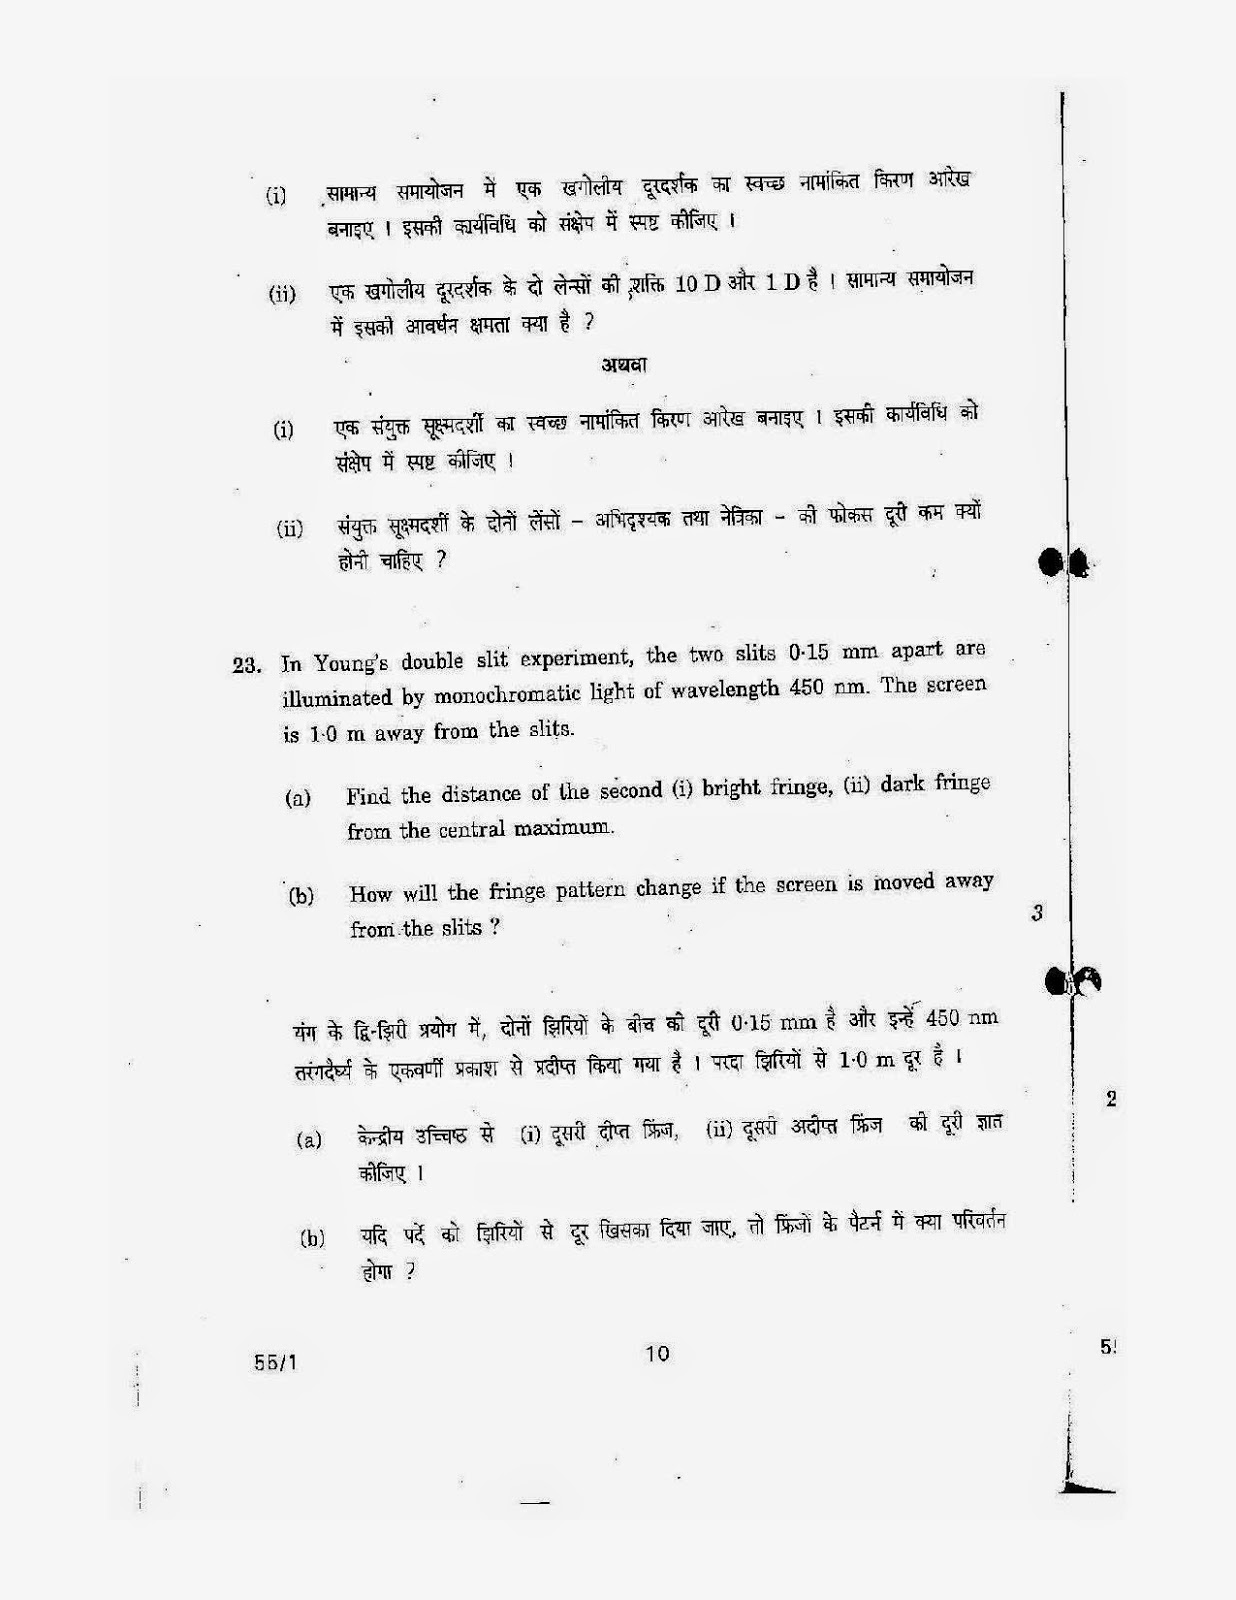 cbse class 12th 2010 Physics question paper